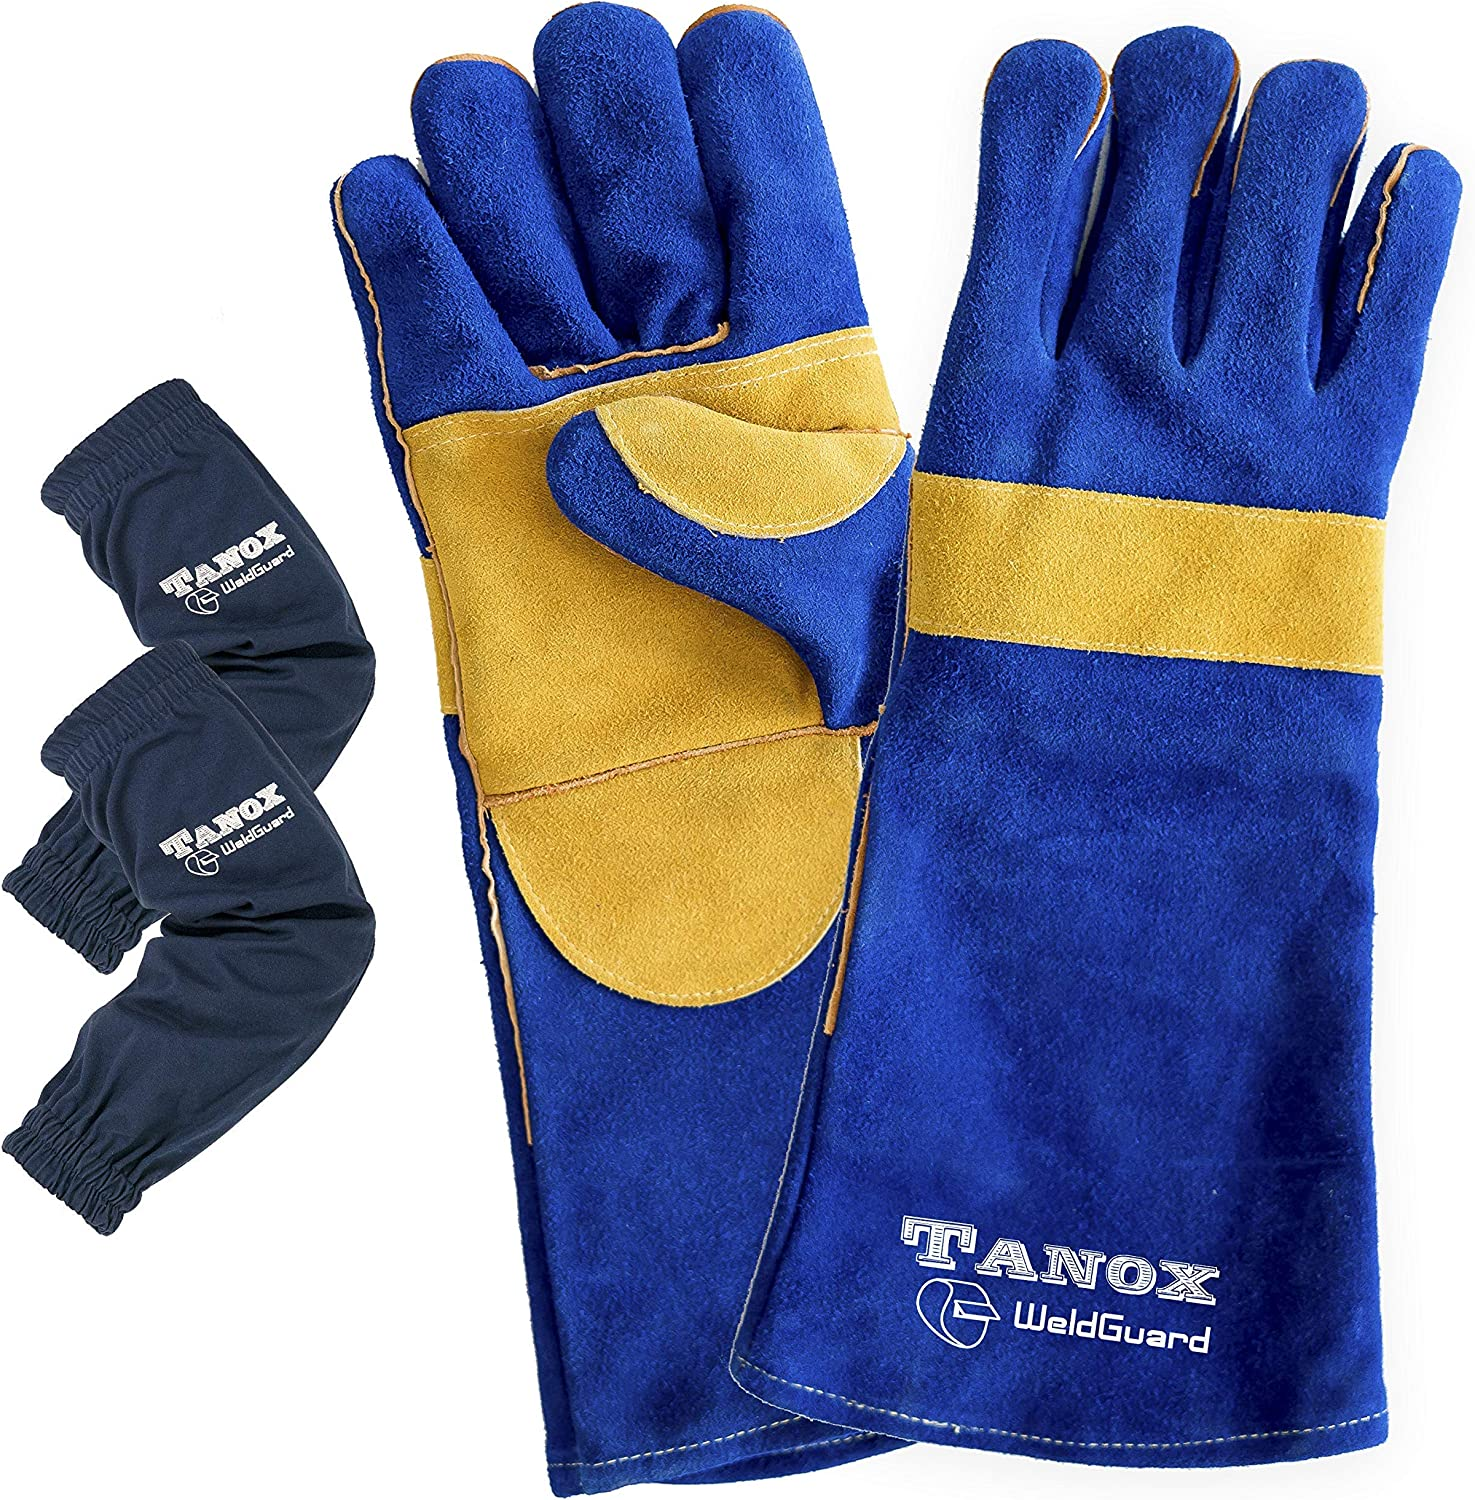 10 Best Welding Gloves for 2020 11